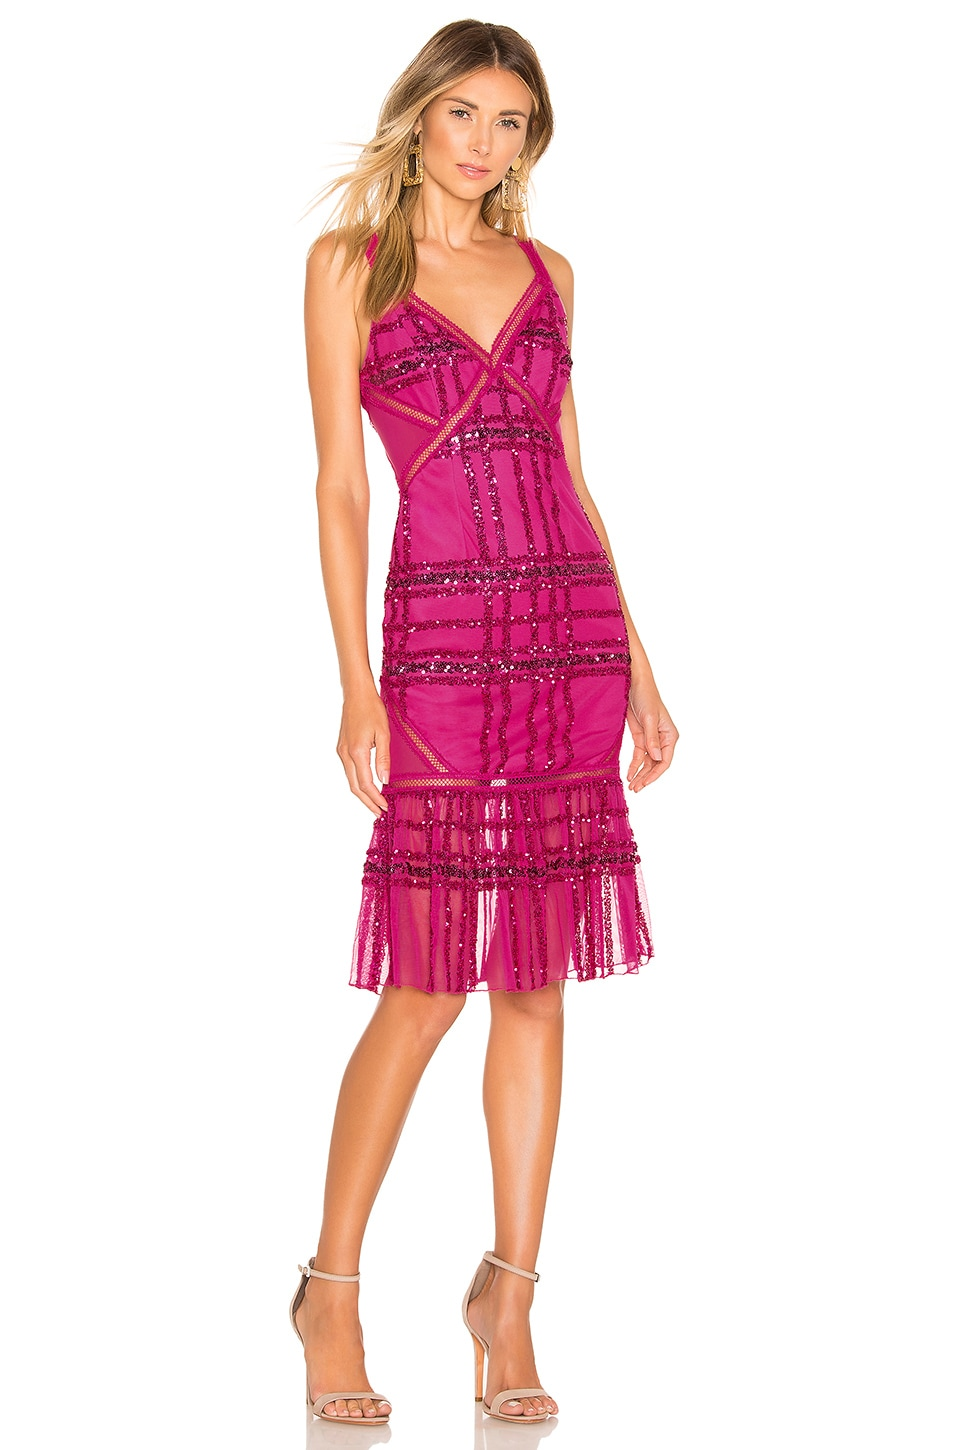 X by NBD Sadie Midi Dress in Fuchsia